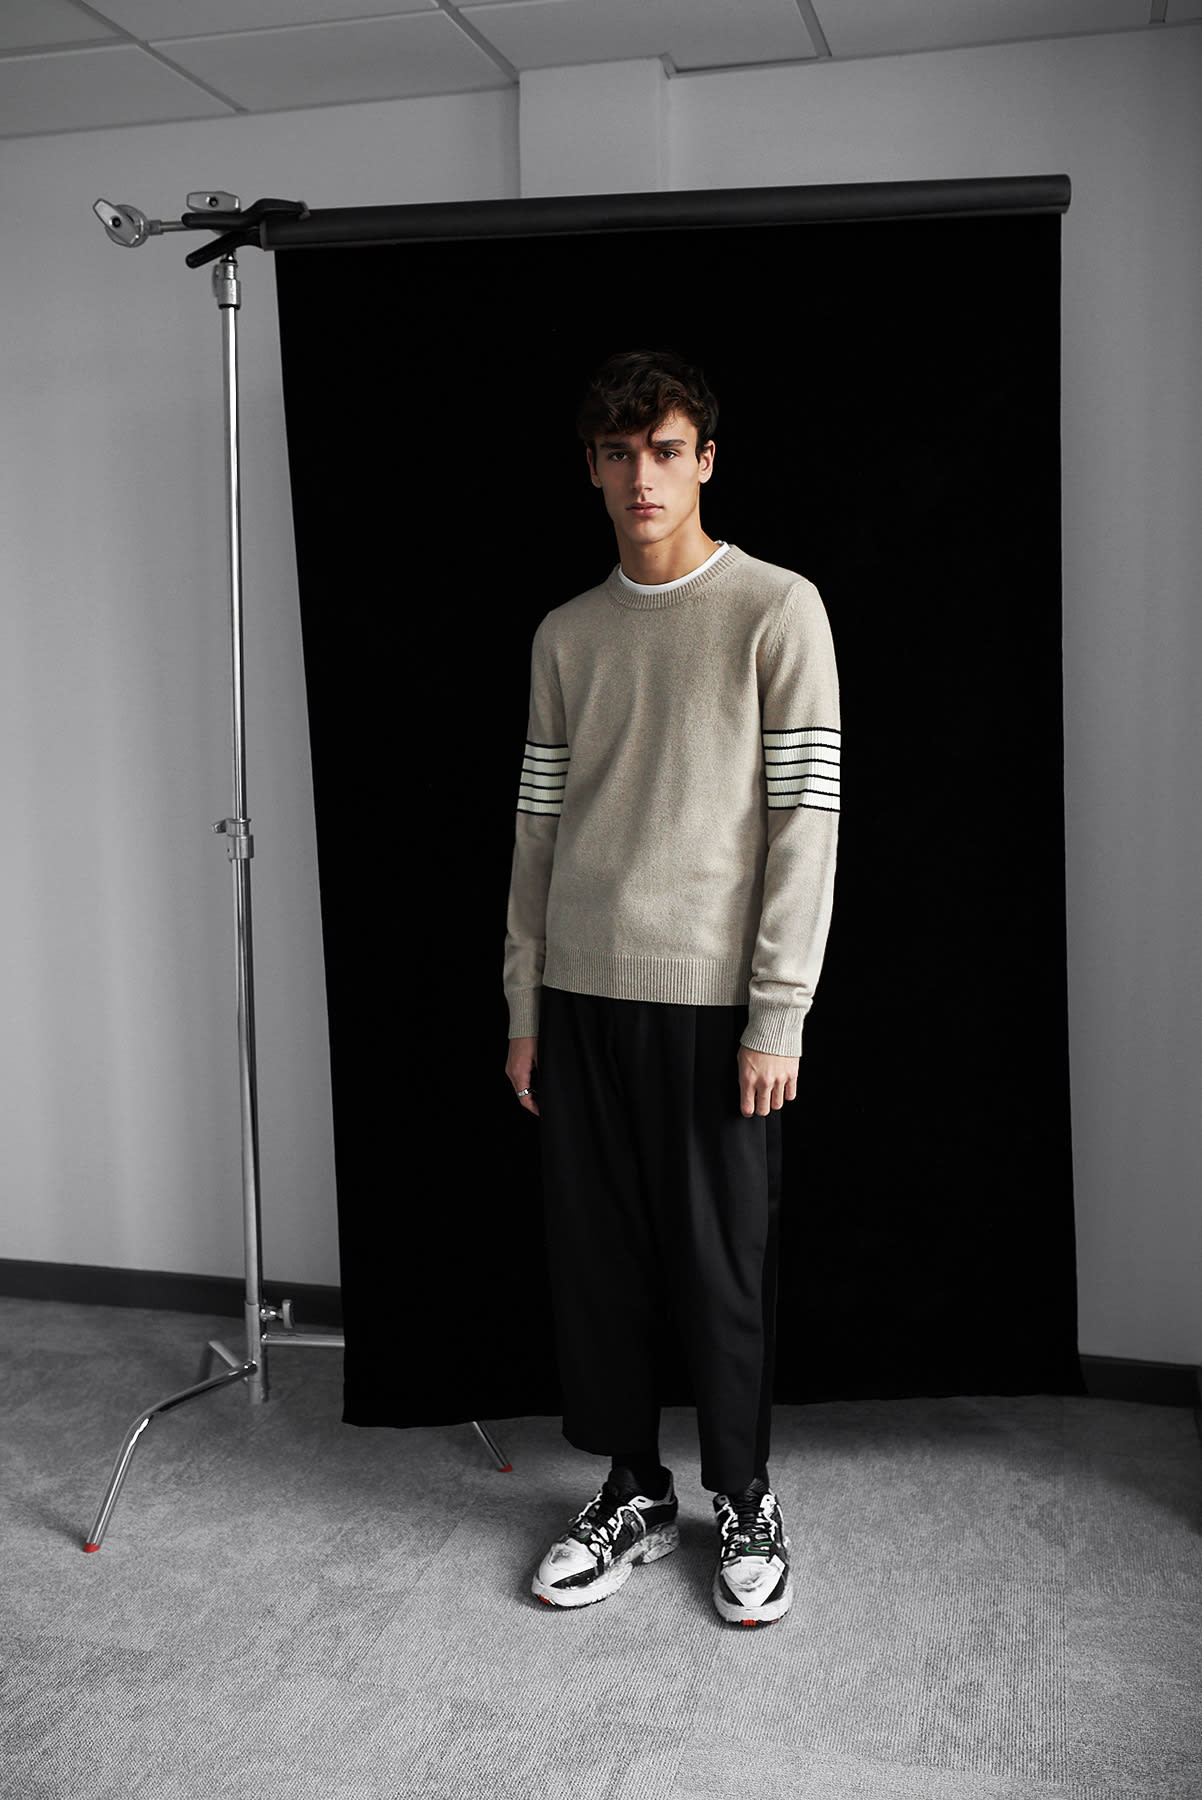 Maison Margiela's refined elegance with the arm stripe crew knit